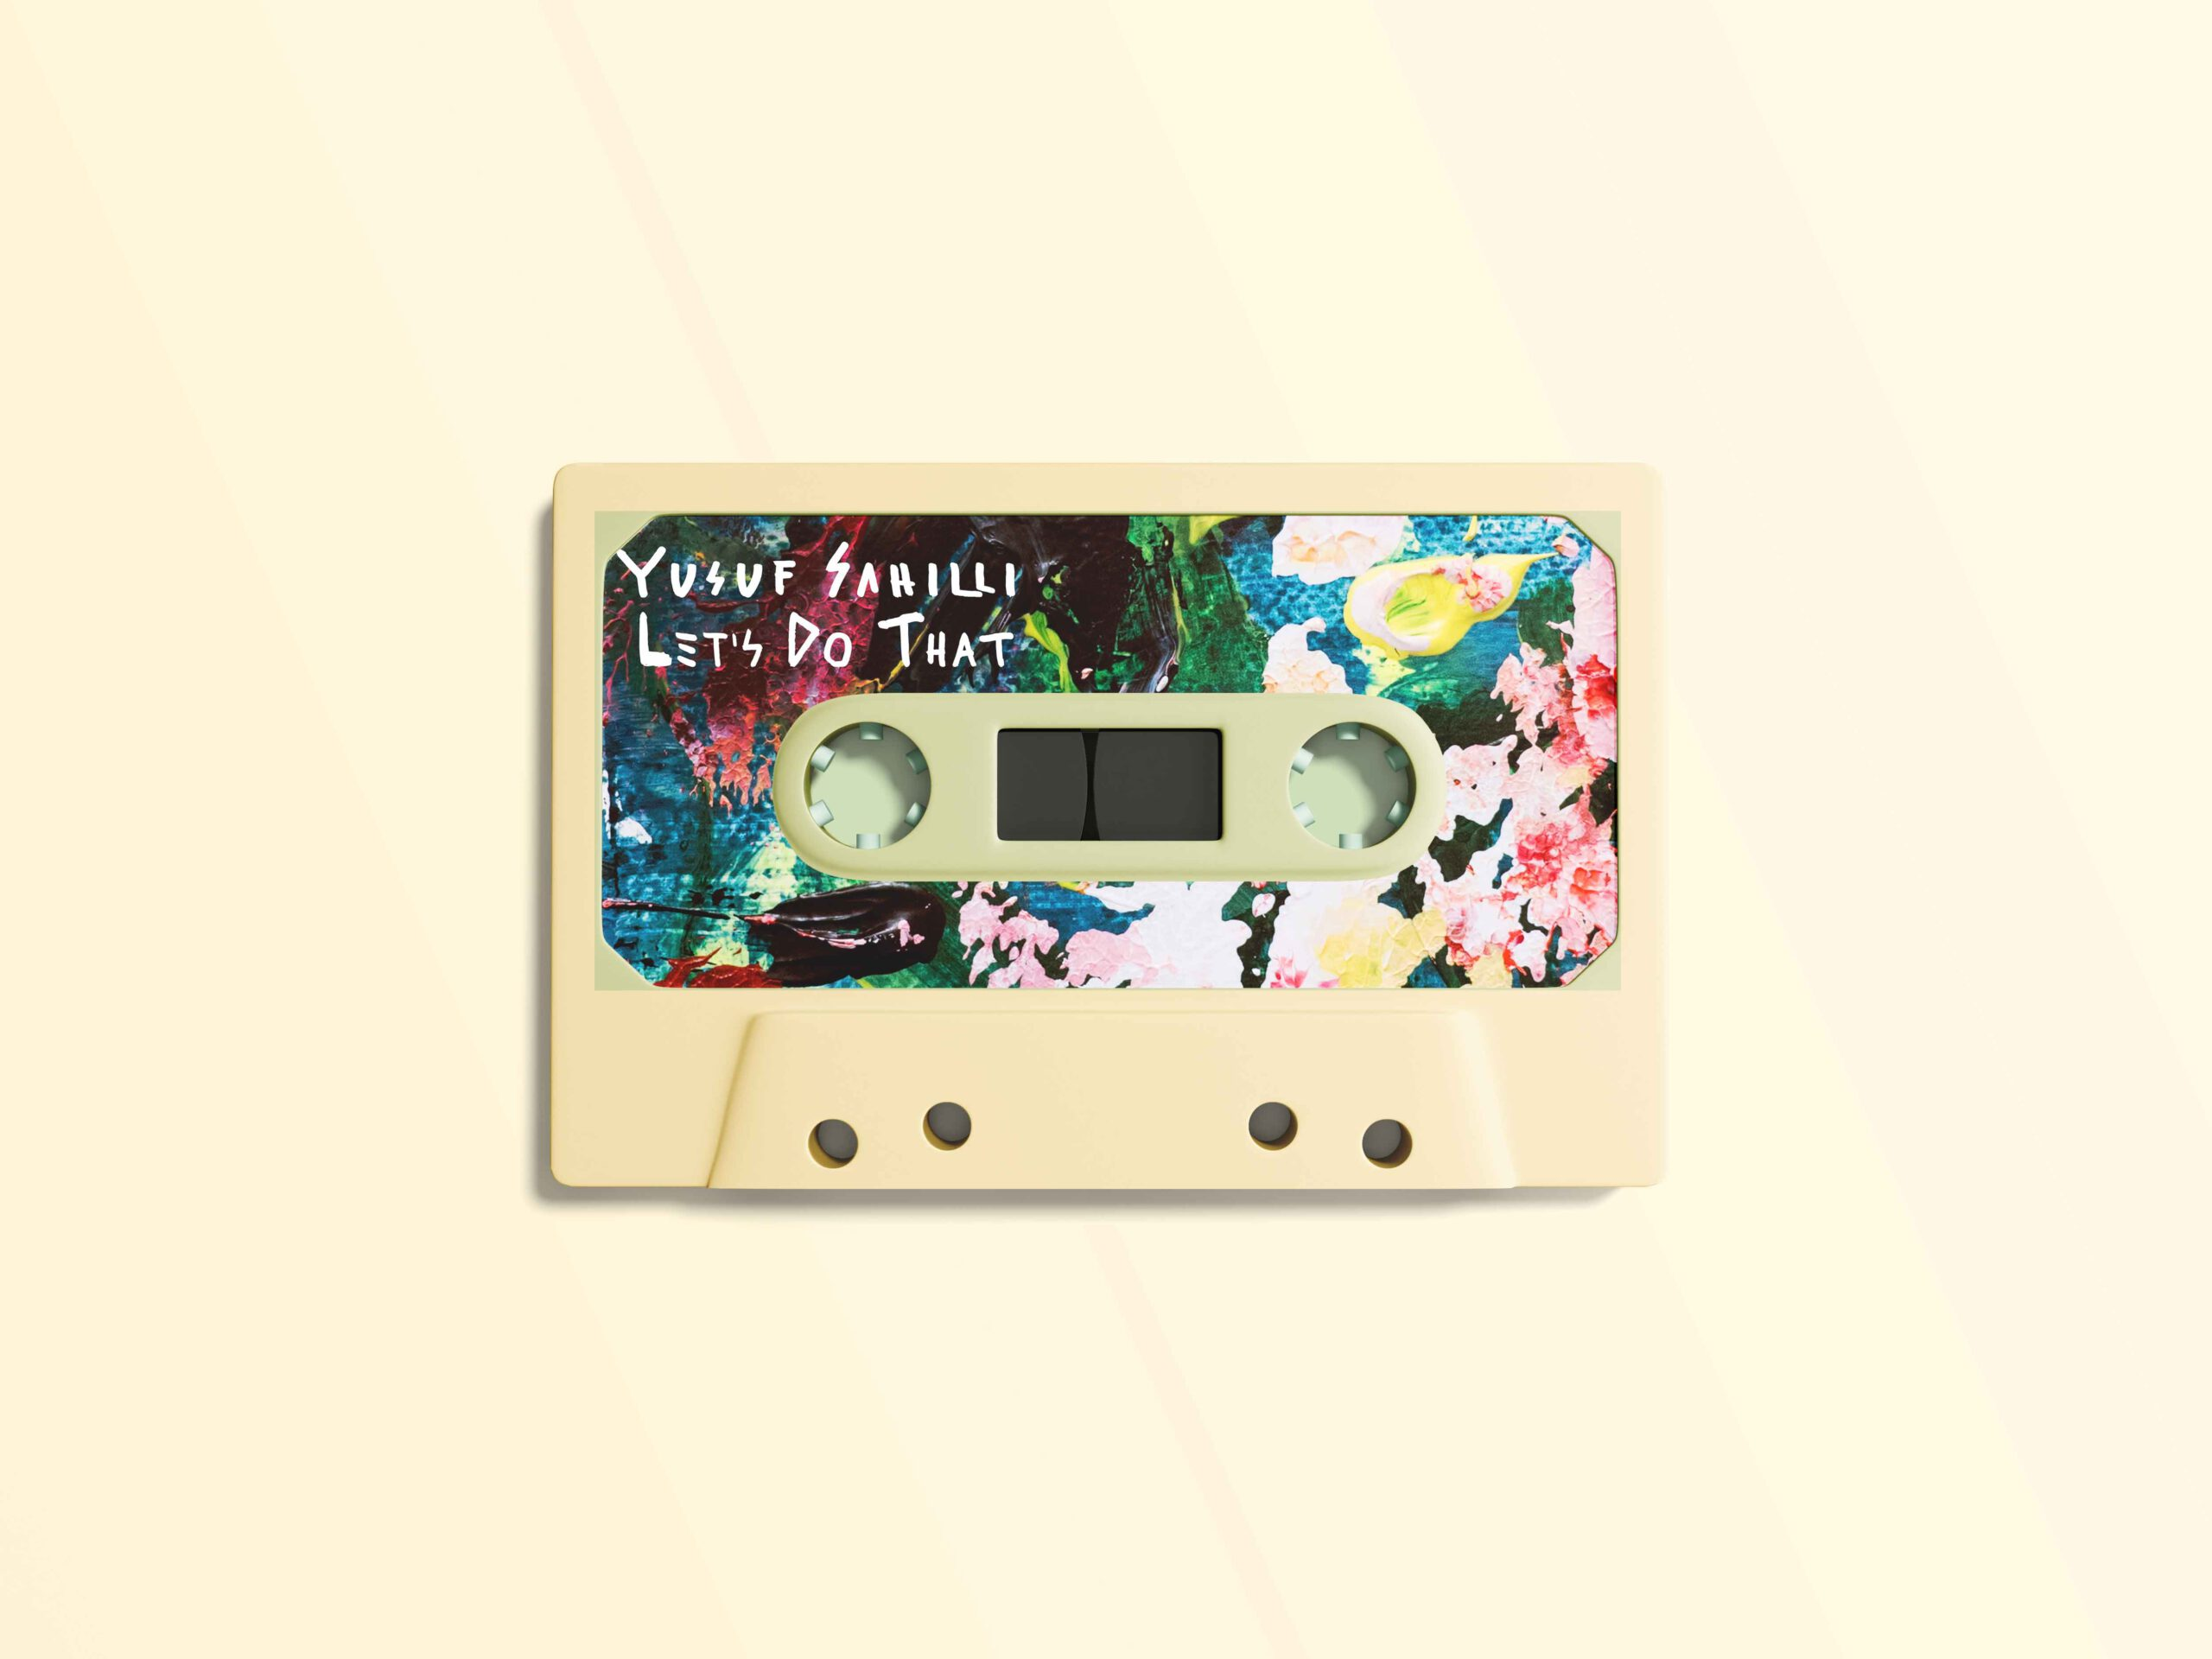 cassette-yusuf-sahilli-lets-do-that